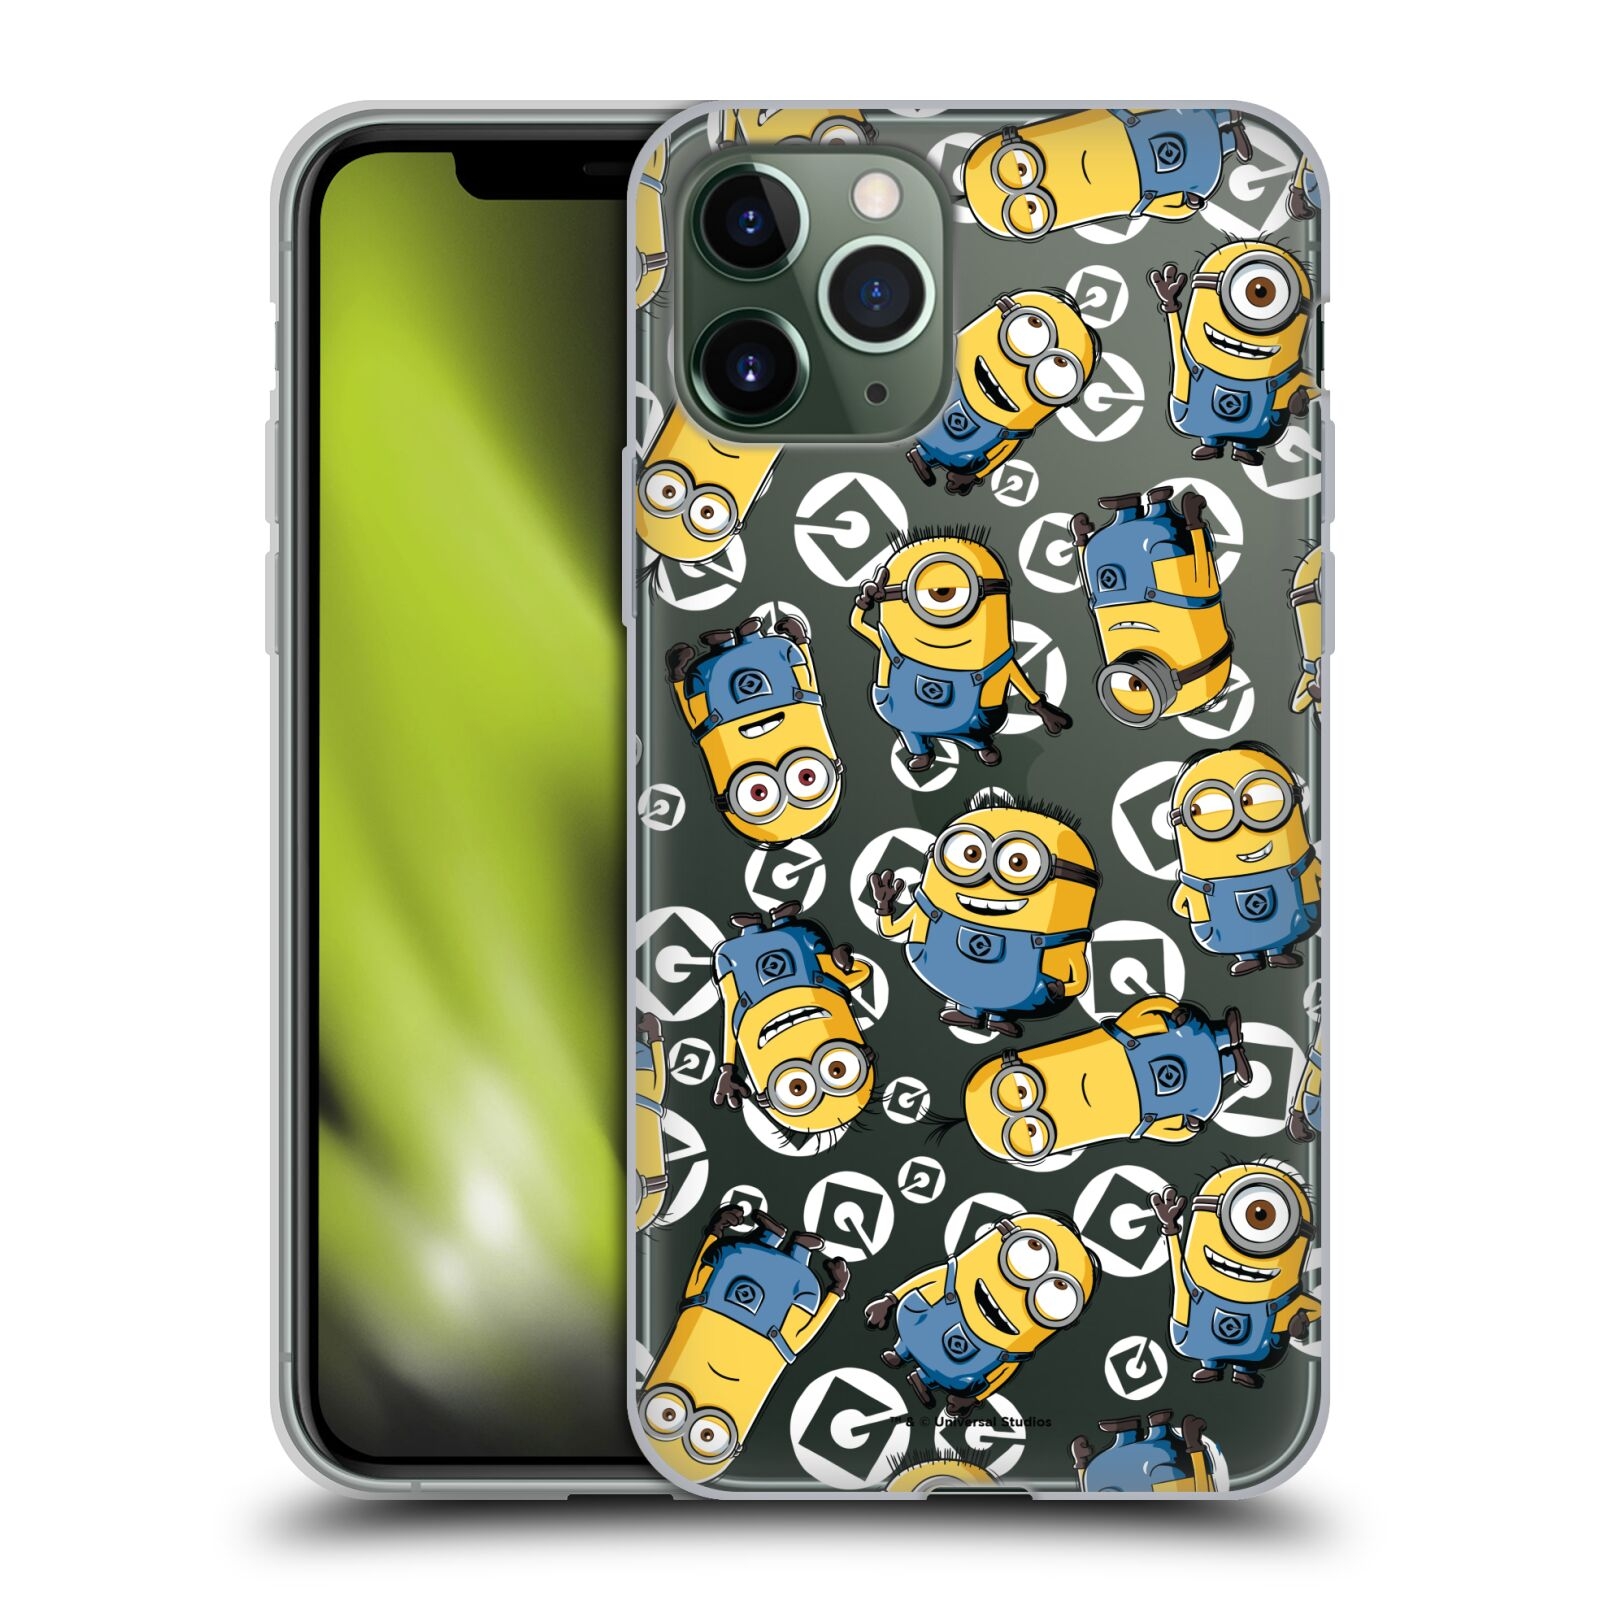 iphone 8 plus kryt gucci | Silikonové pouzdro na mobil Apple iPhone 11 Pro - Head Case - Minion pattern z filmu Já, padouch - Despicable Me